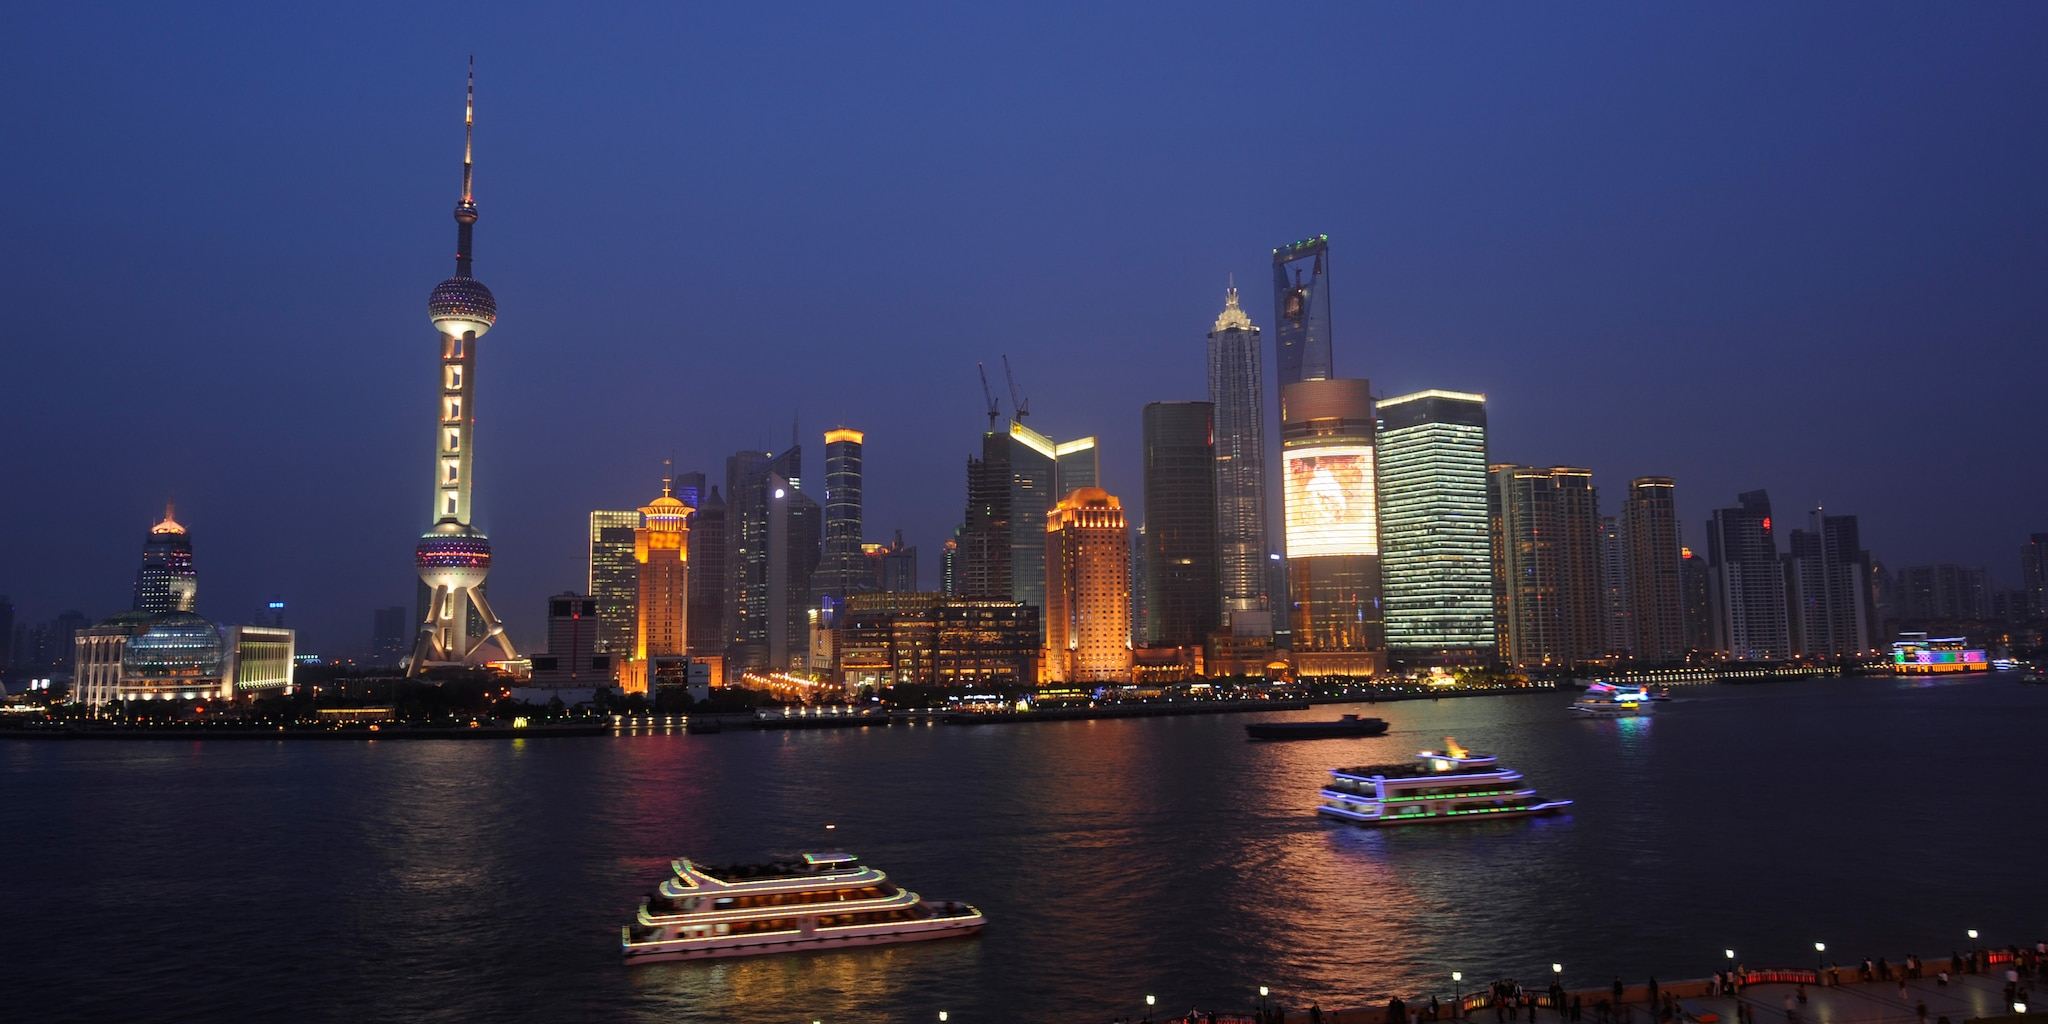 The Shanghai skyline across the harbor at night